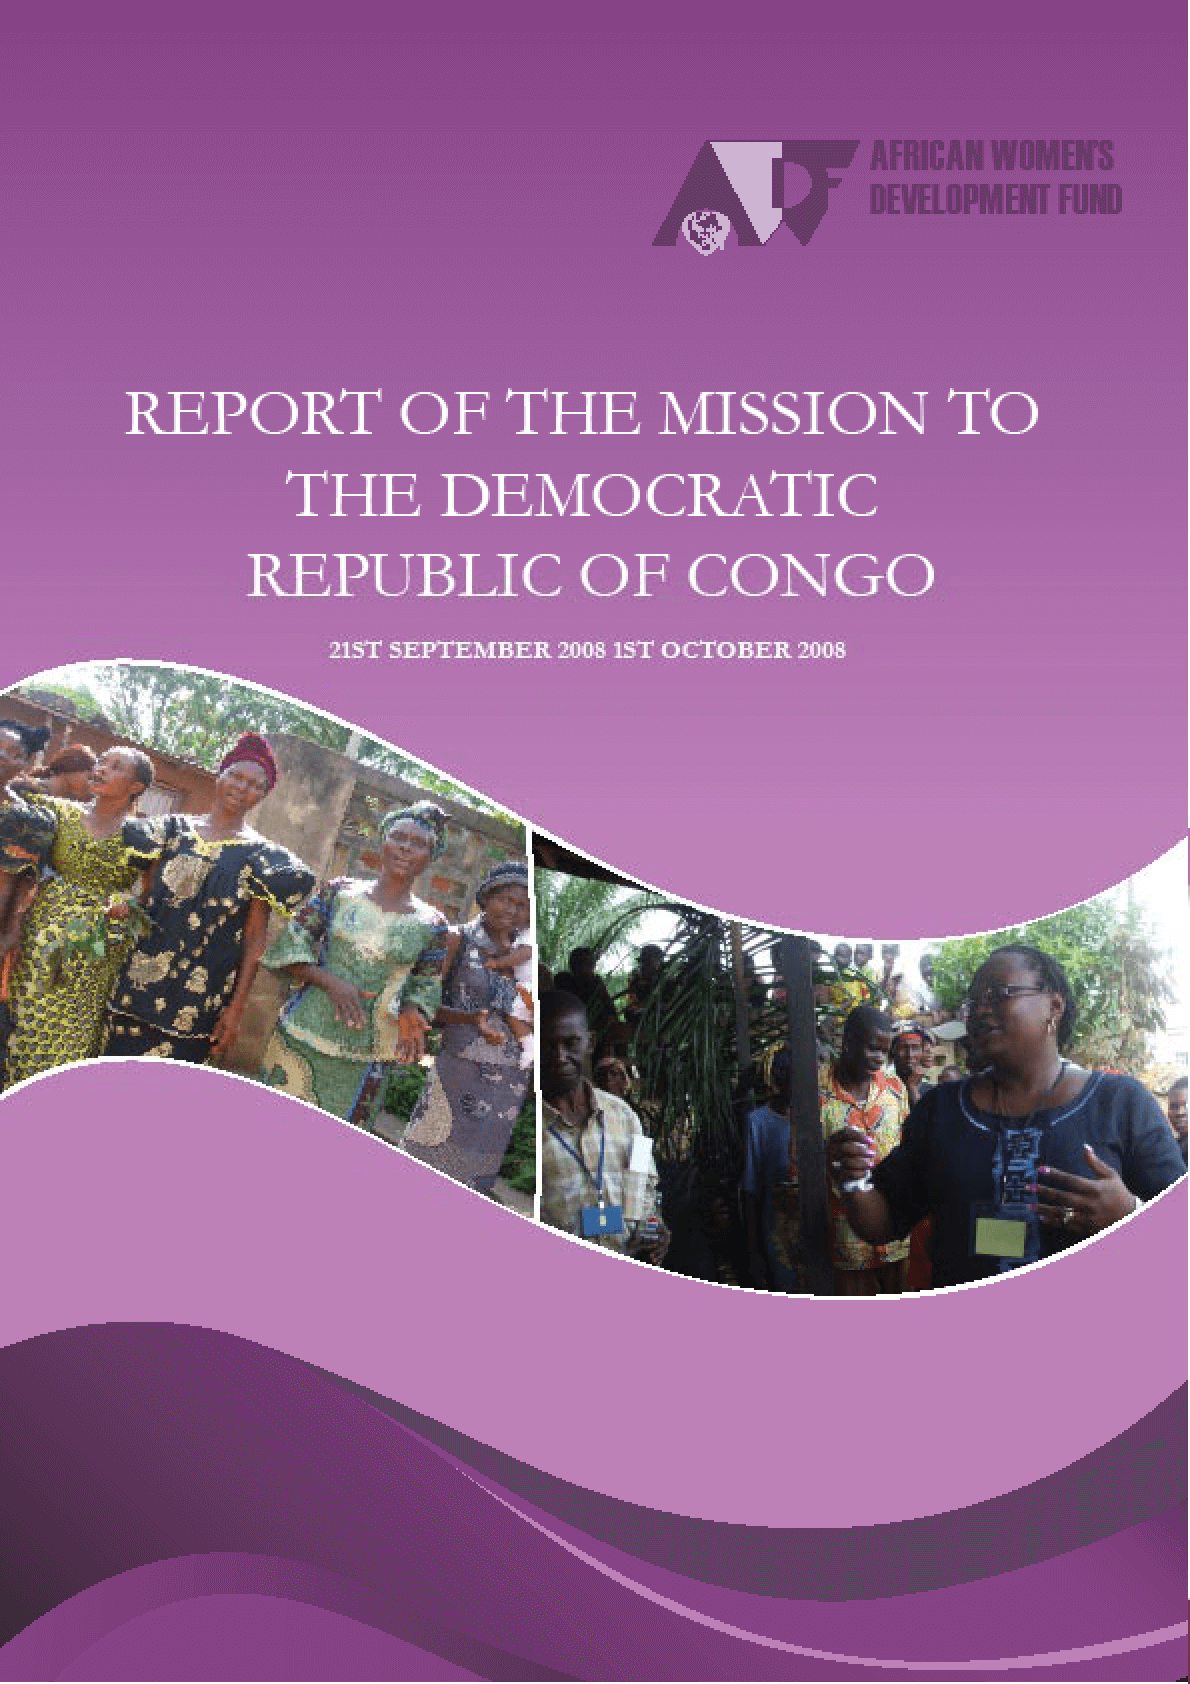 Report of the Mission to the Democratic Republic of Congo